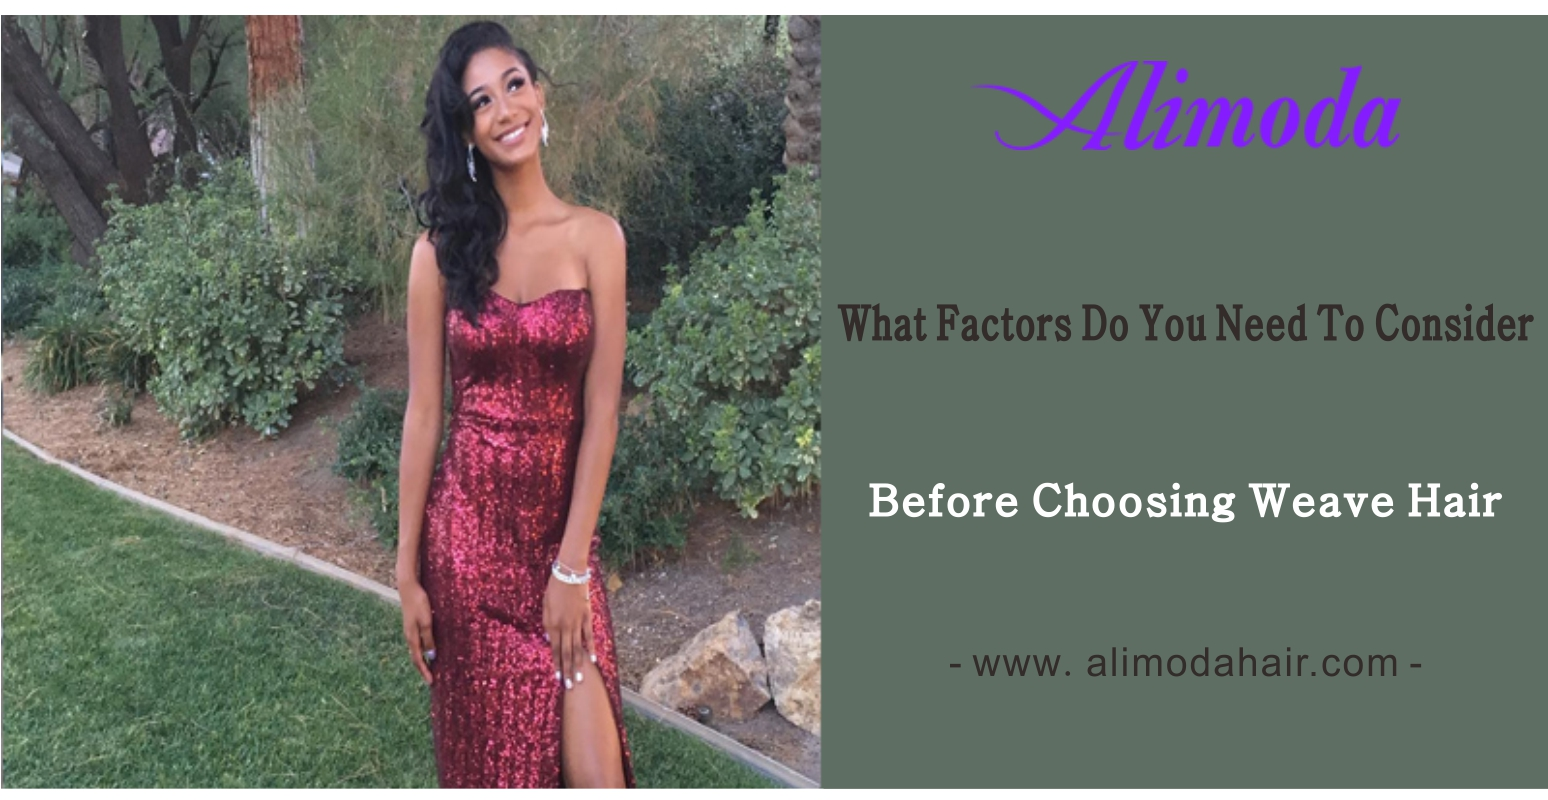 What factors do you need to consider before choosing human weave hair?